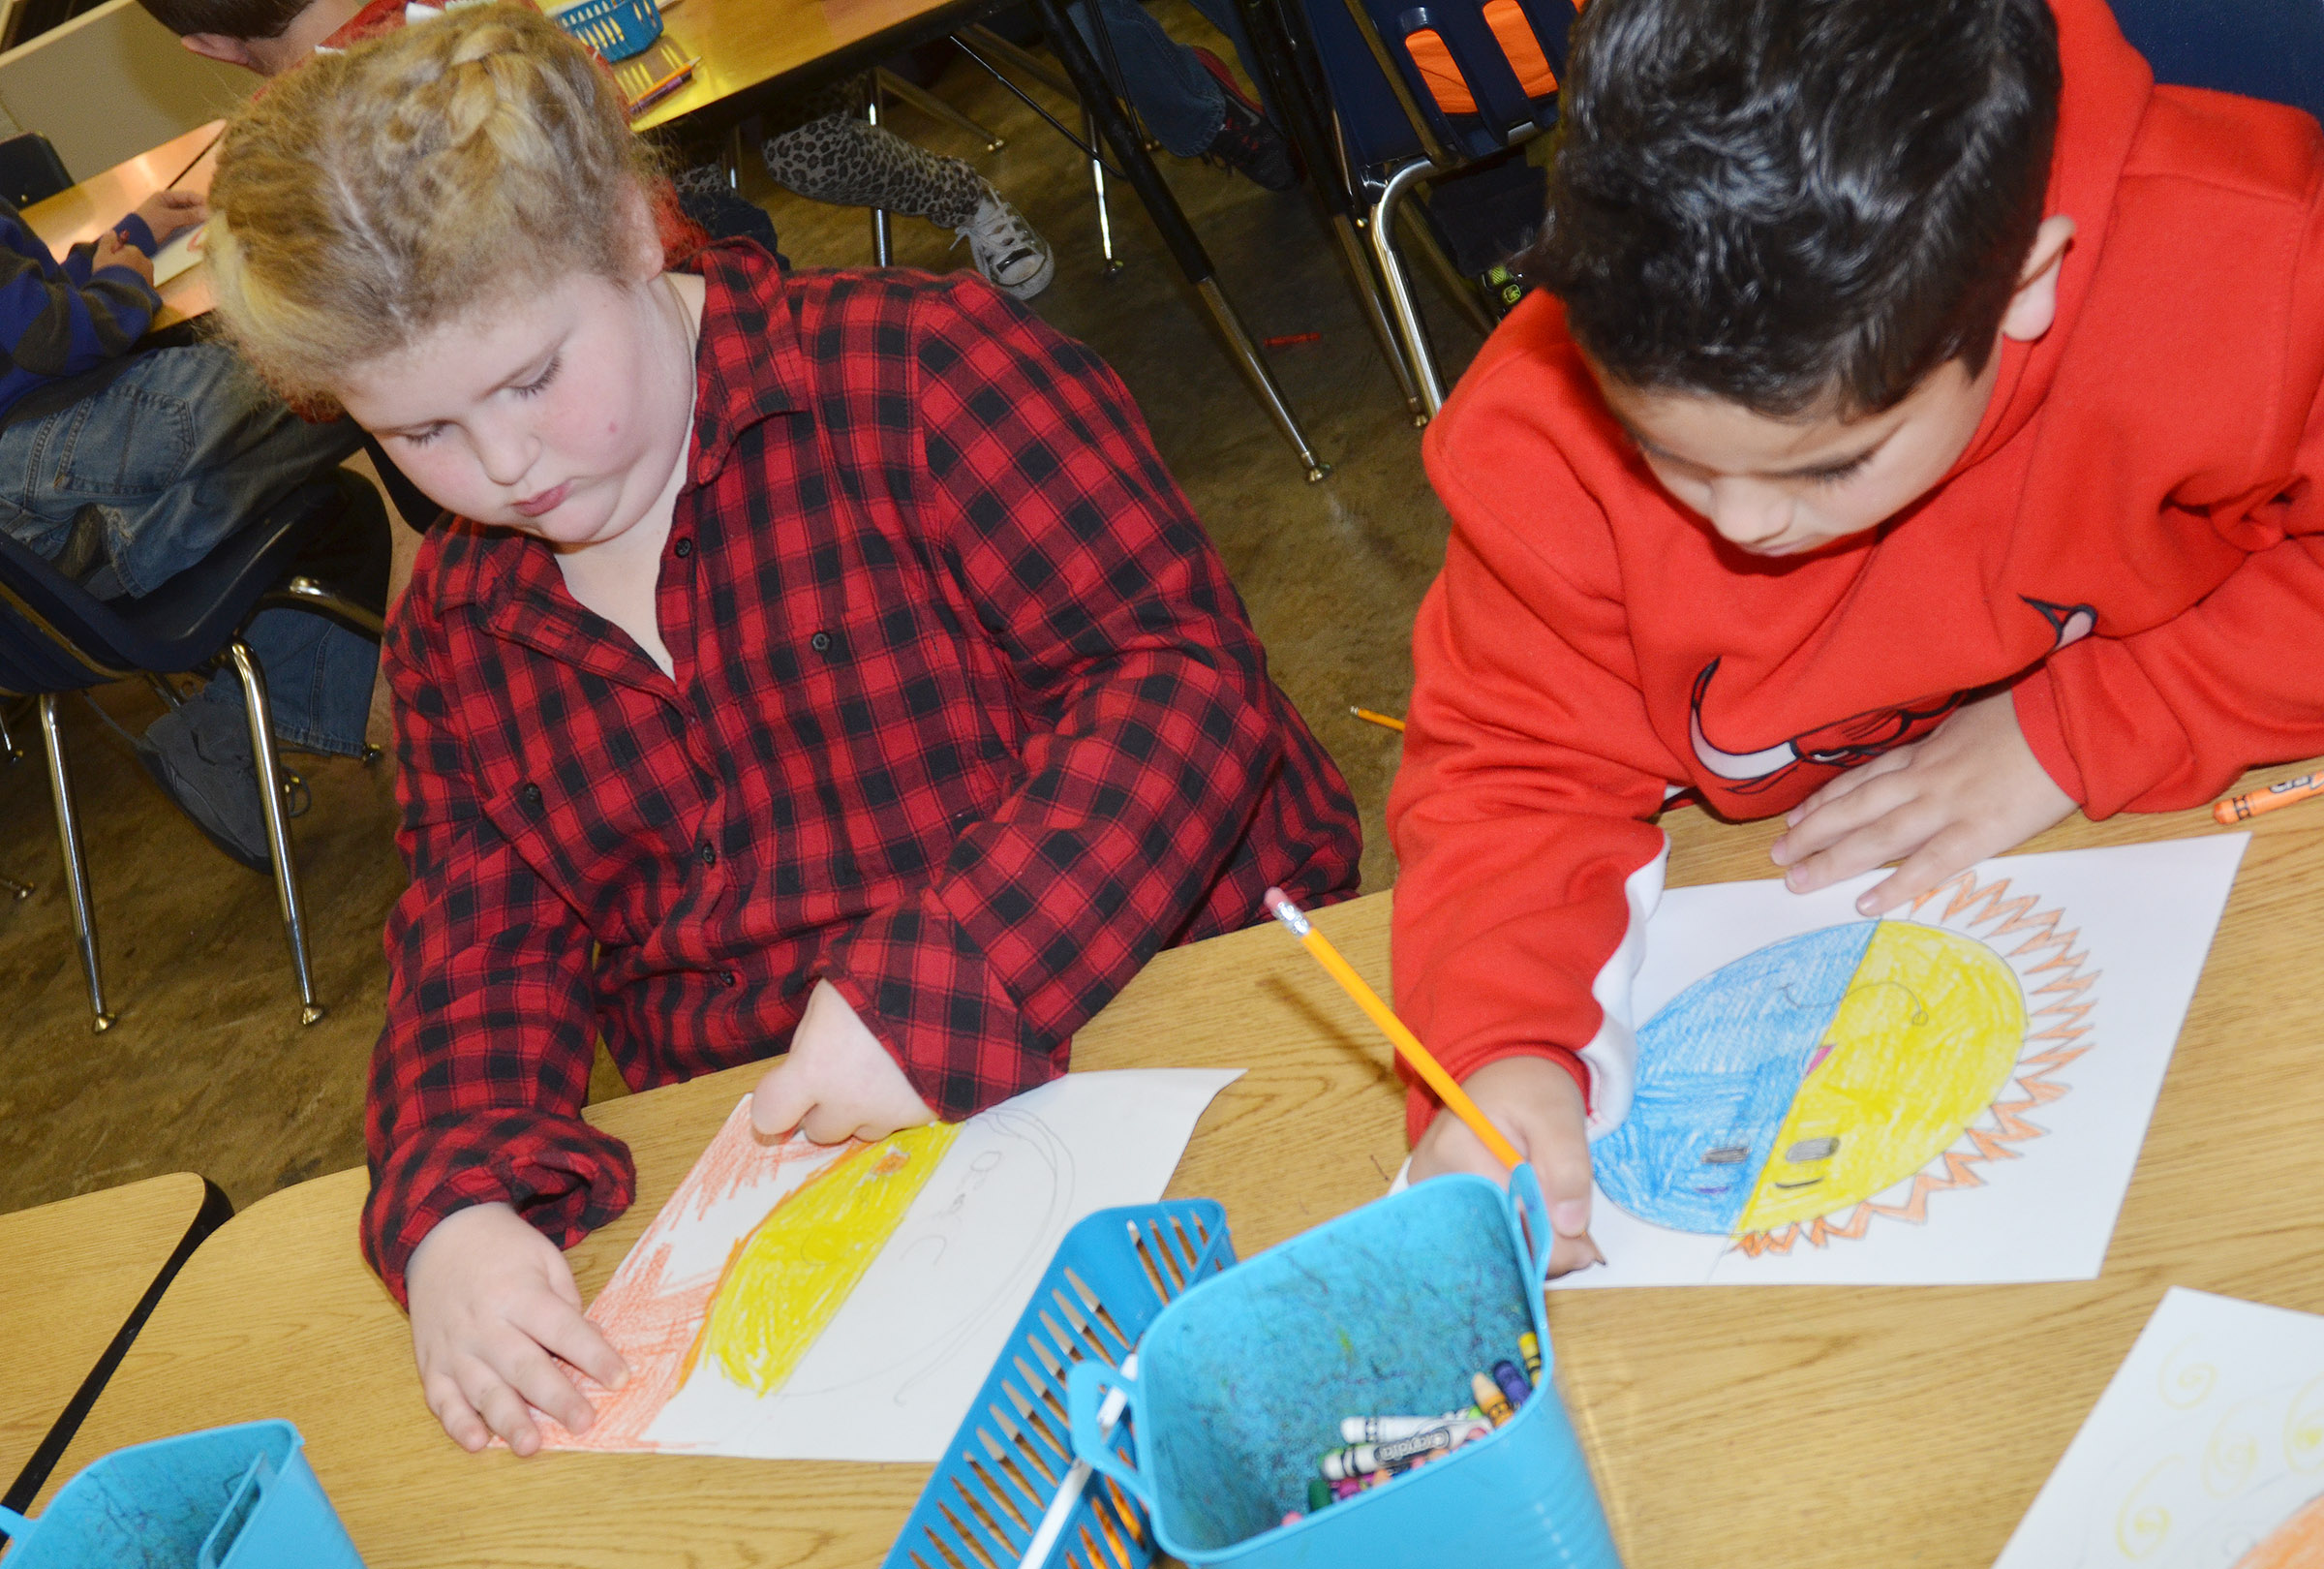 CES second-graders Elizabeth Foster, at left, and Nicholas Almeida color their warm and cool color faces.